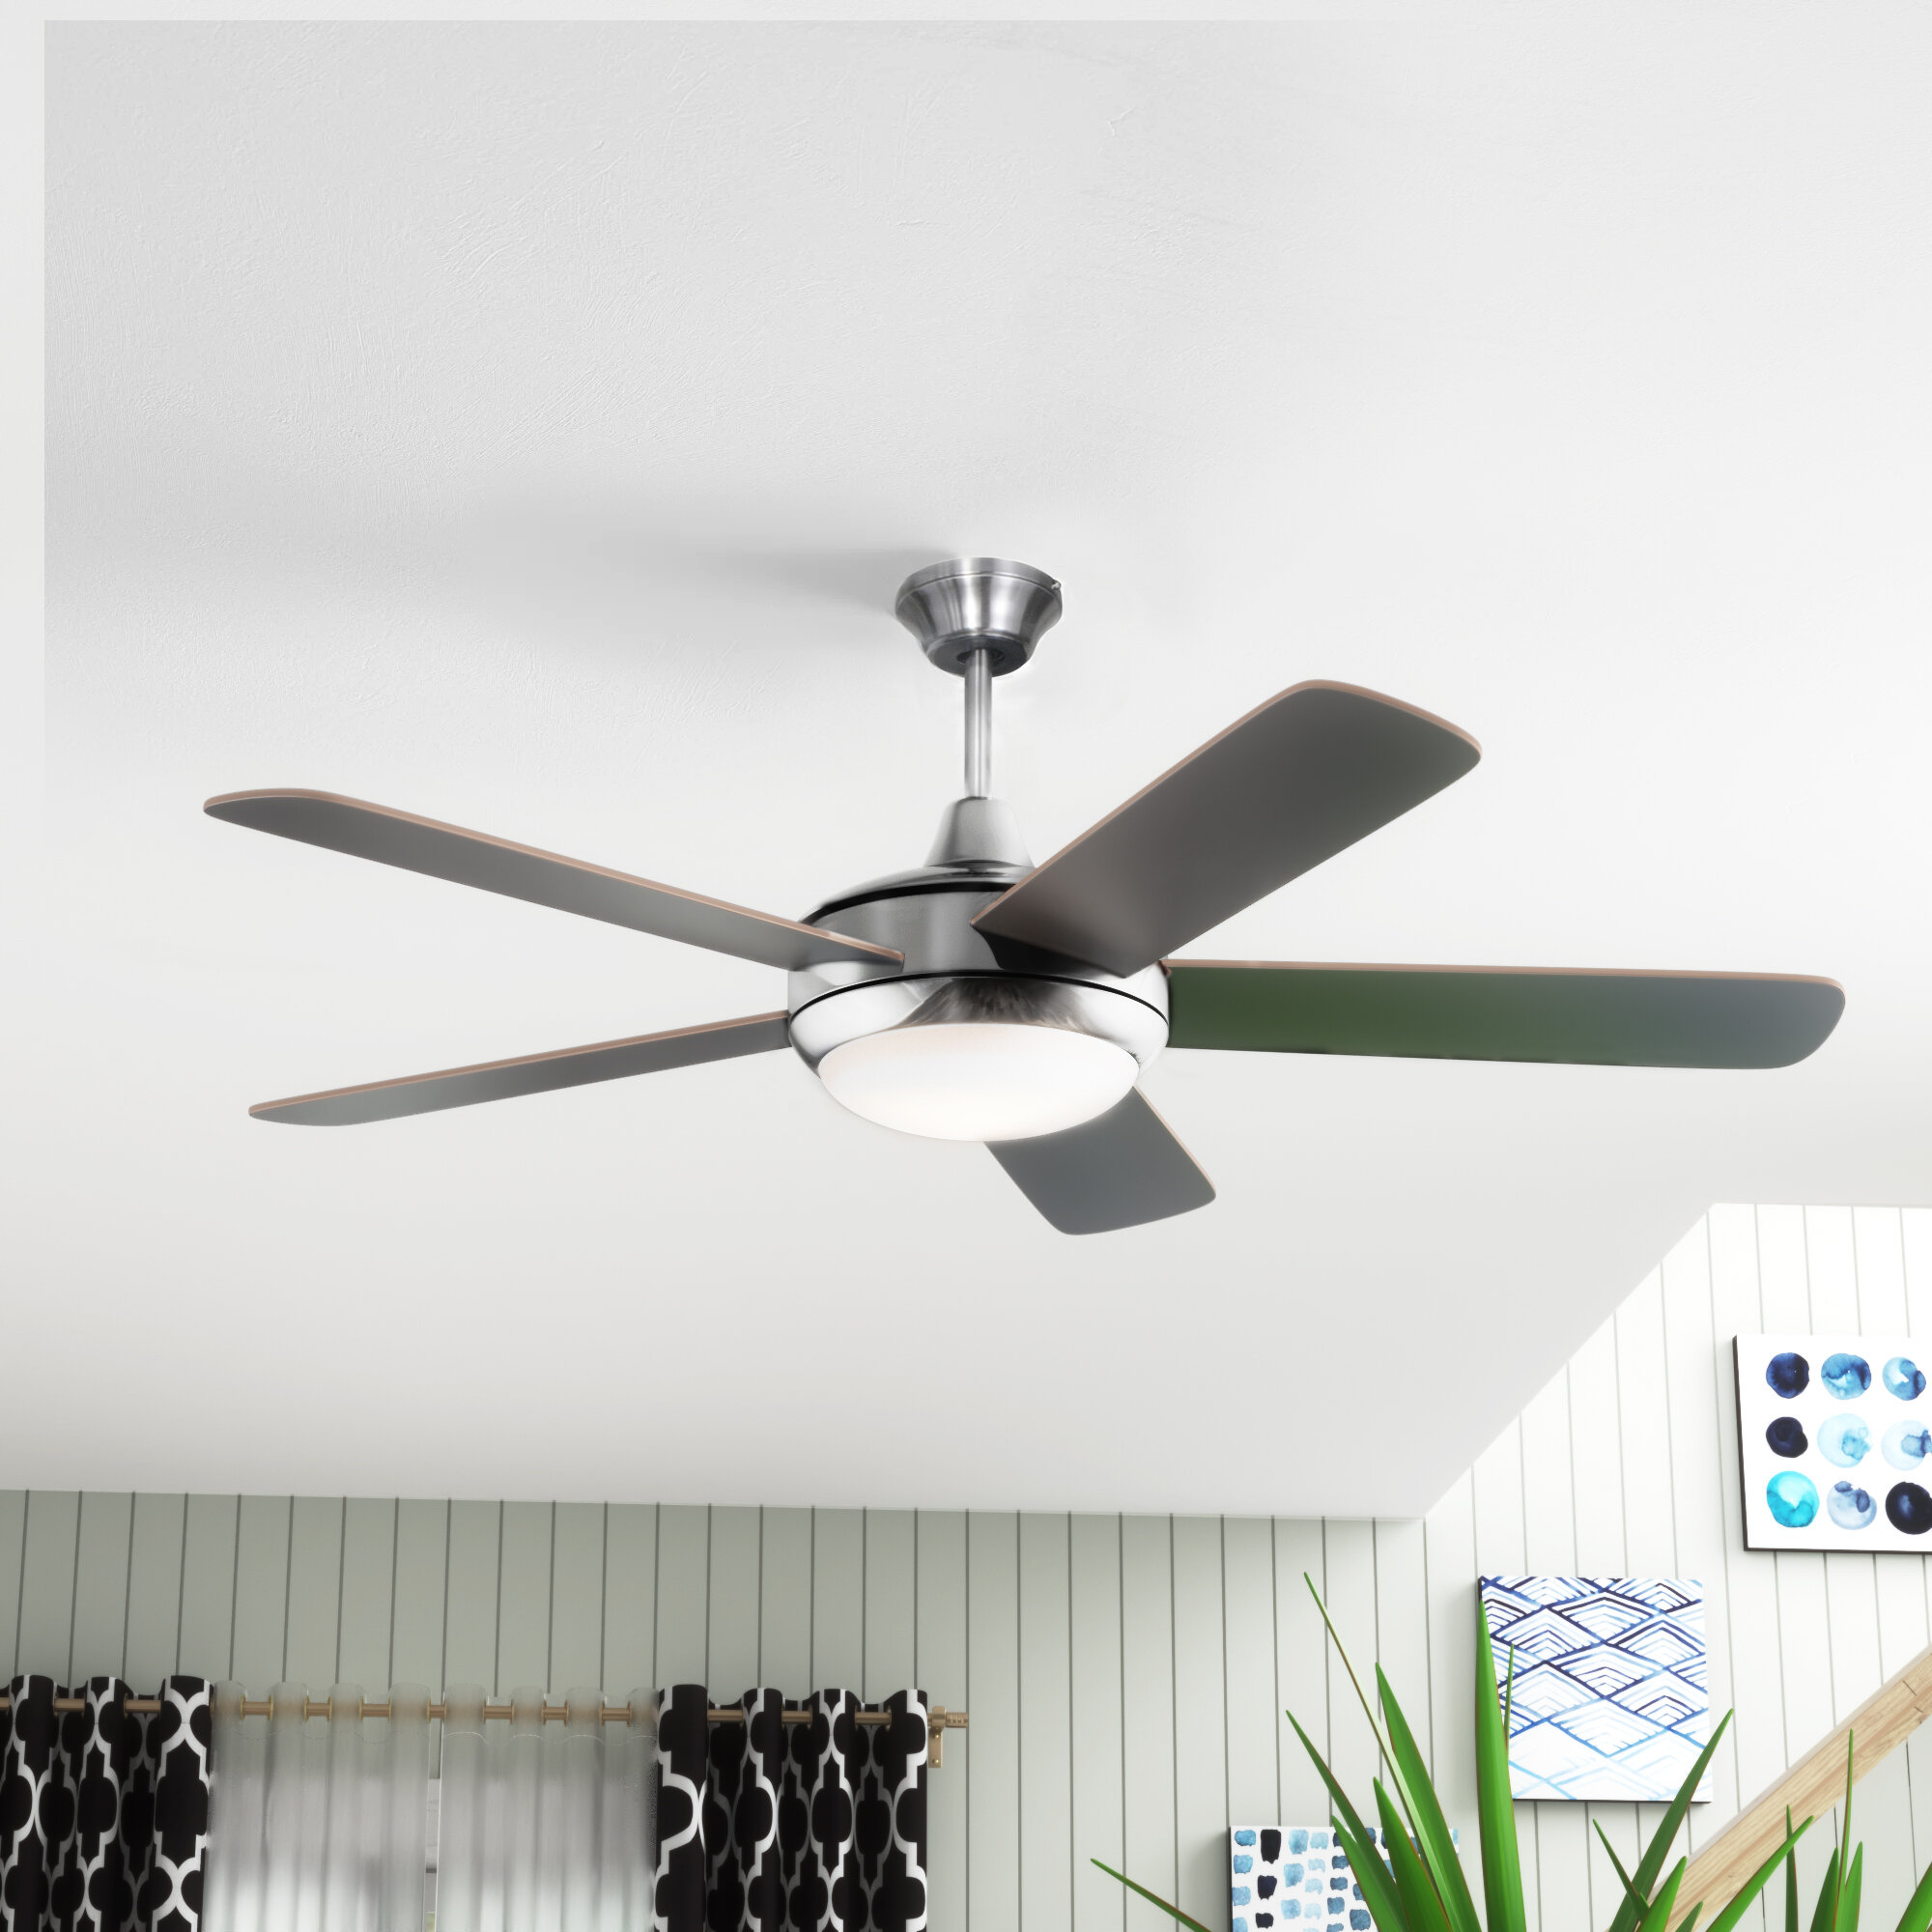 Ceiling Fans Matte White Ceiling Fan With Light Kit 36 Inches Indoor 6 Blades Reversible